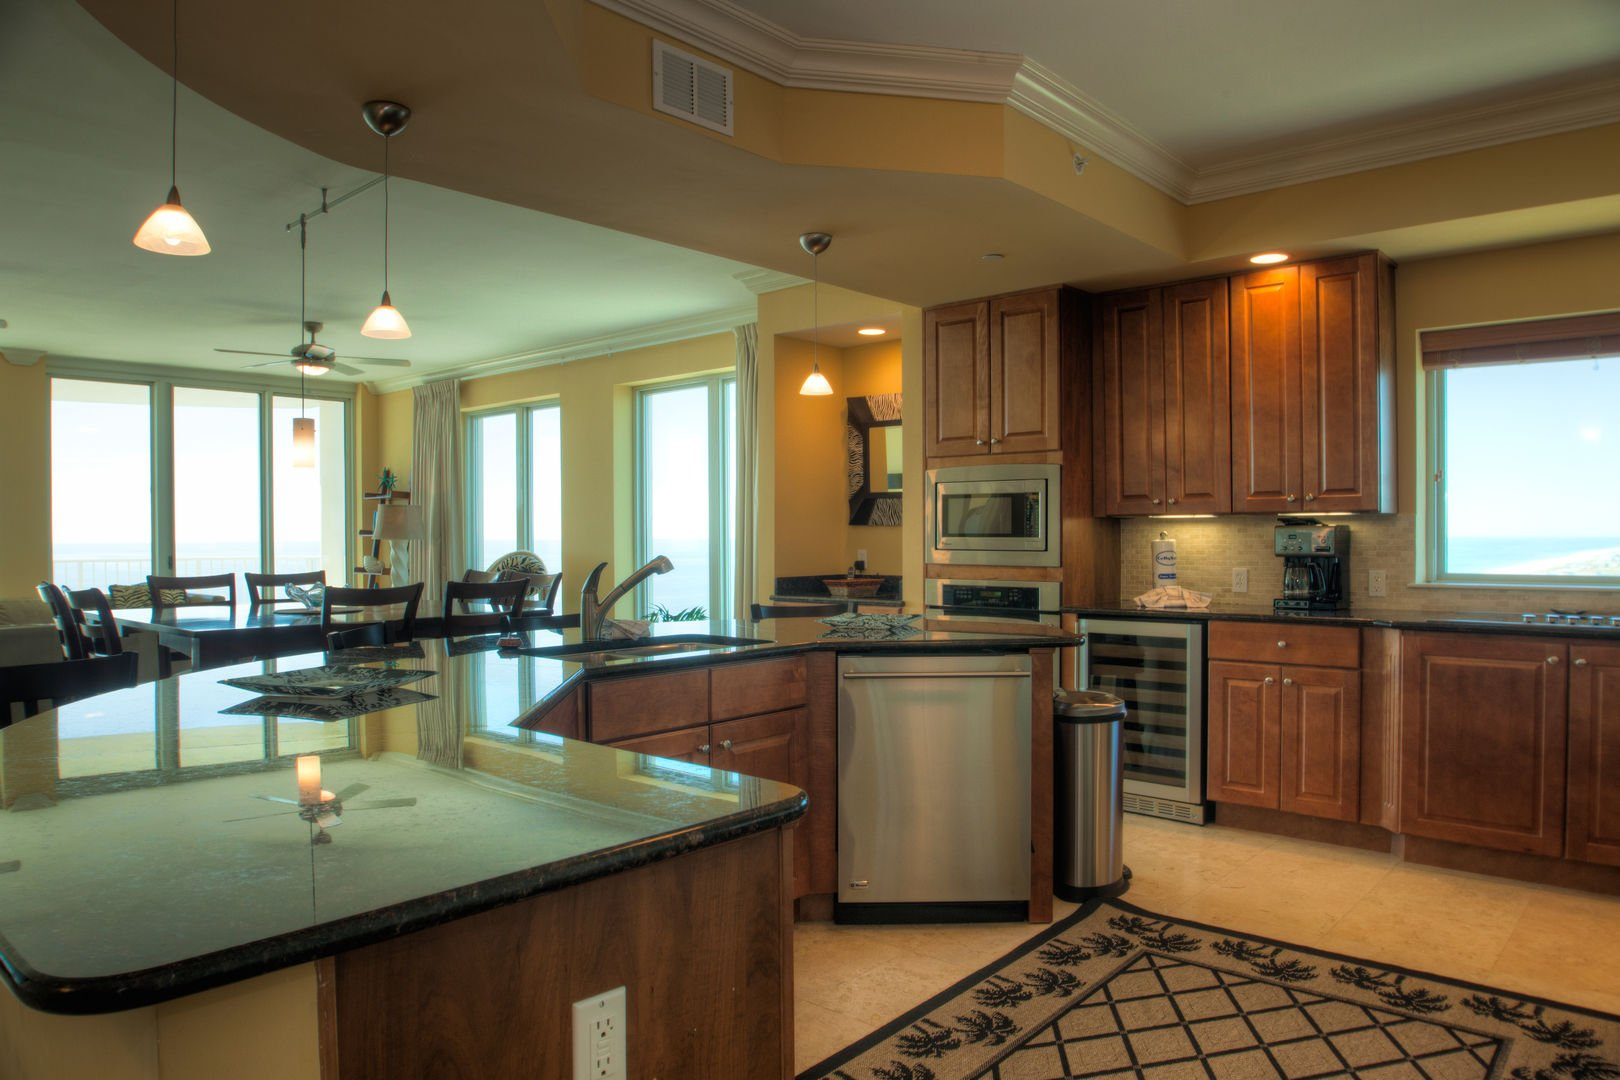 Kitchen with Island, Dishwasher, Wine Cooler, Microwave, and Dining Set.